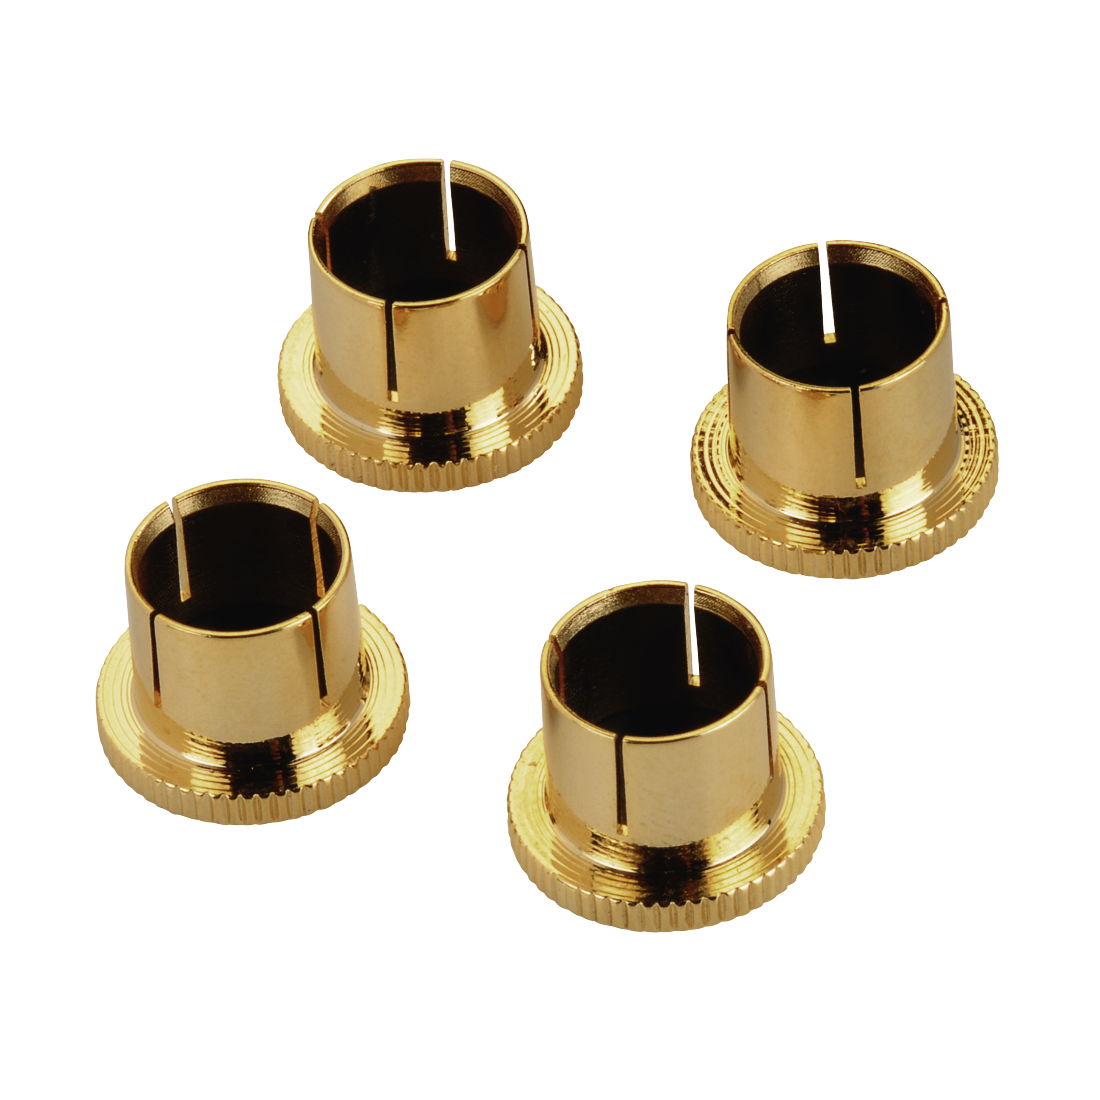 abx2 High-Res Image 2 - Avinity, RCA Protective Caps, gold-plated, set of 4